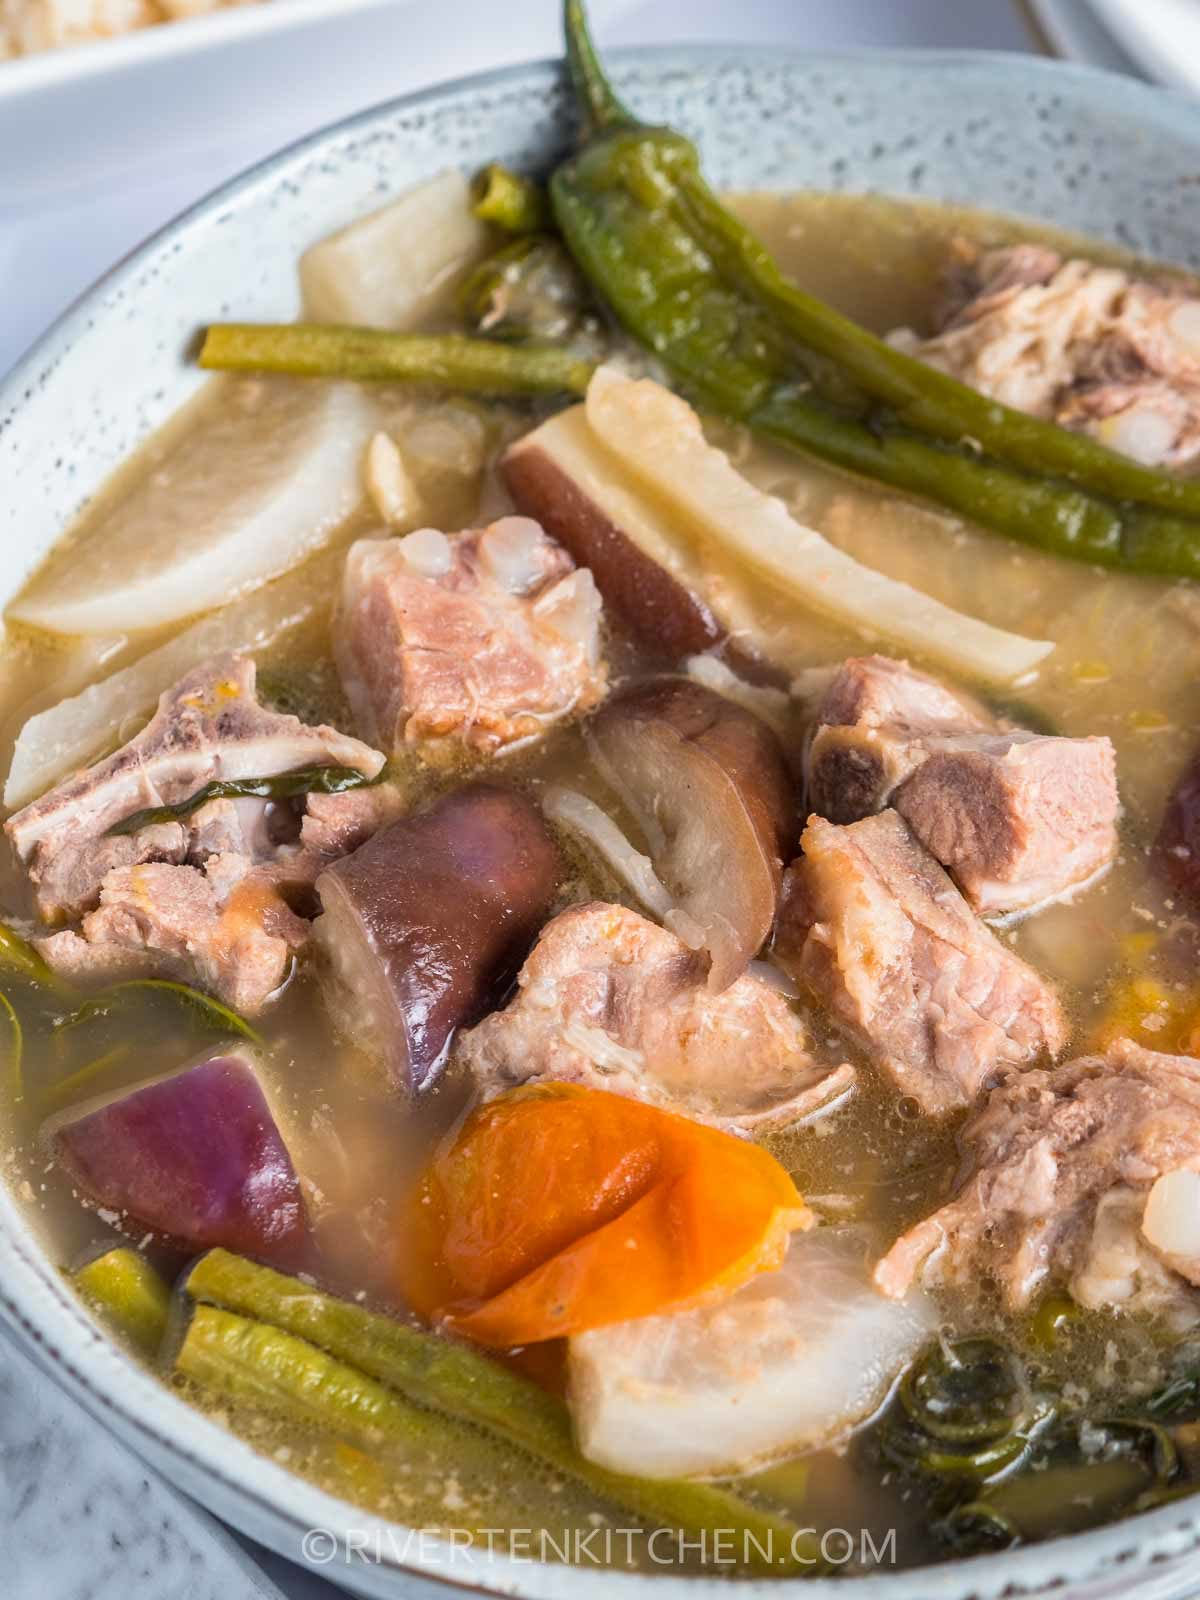 Pork Ribs  and Vegetables Soup in Sour Broth